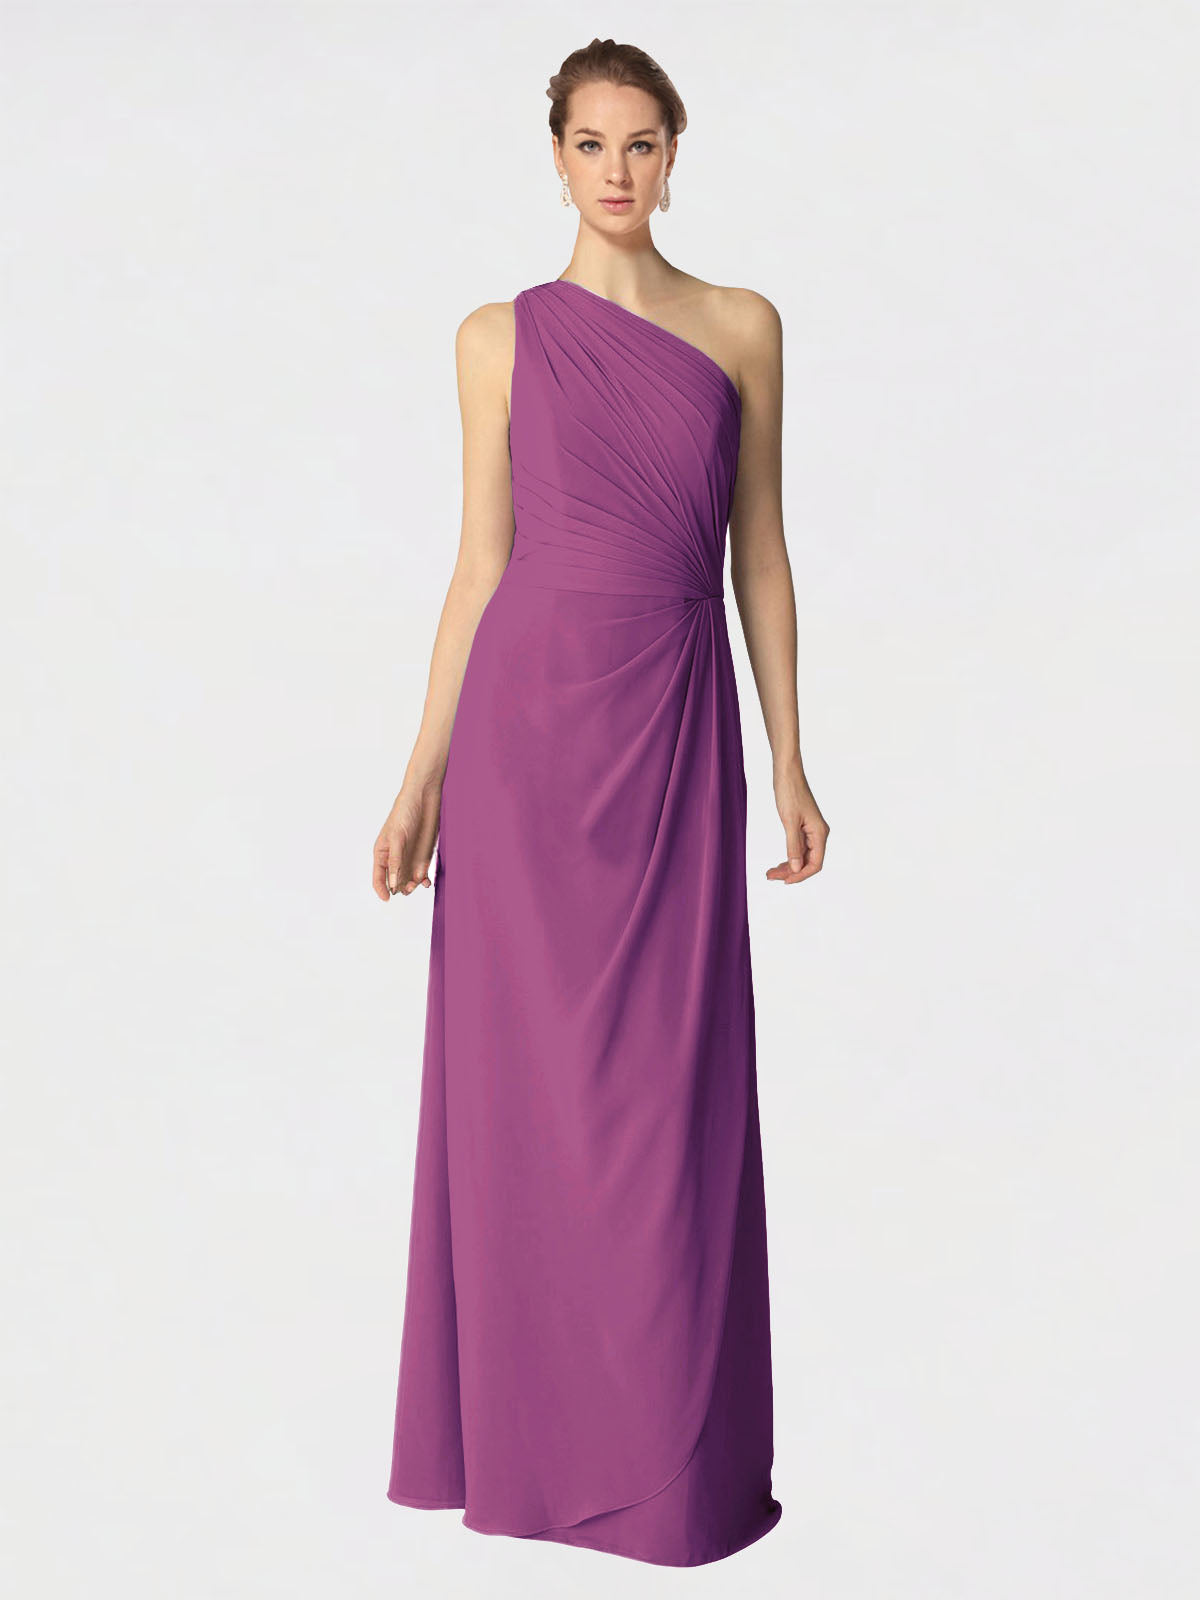 Long A-Line One Shoulder Sleeveless Wild Berry Chiffon Bridesmaid Dress Aurora